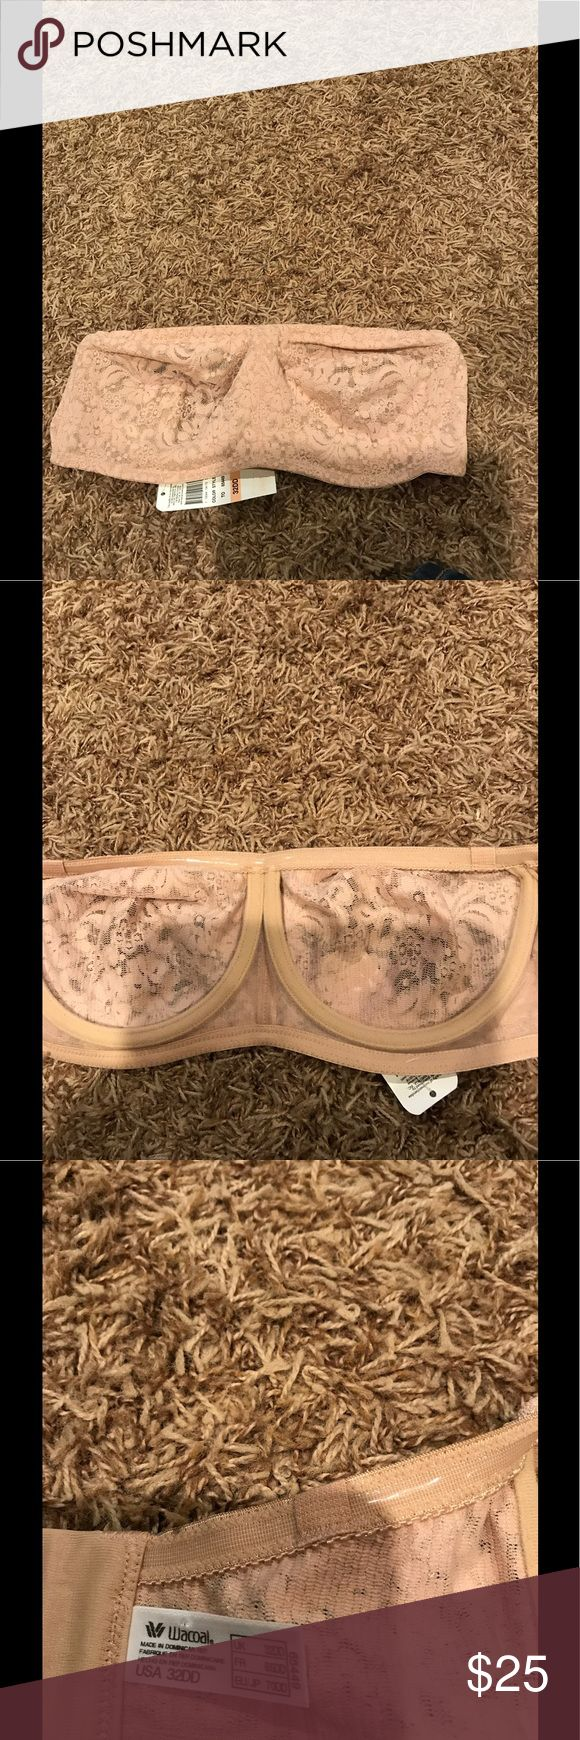 NWT wacoal 32DD Halo Lace strapless bra Wacoal 32DD bra NWT Style number - 65449- Halo Lace strapless bra Bra is Bandeau style with an underwire  Has silicone along the edges for extra comfort and support and to help it stay in place Bra has the optional straps included Wacoal Intimates & Sleepwear Bras